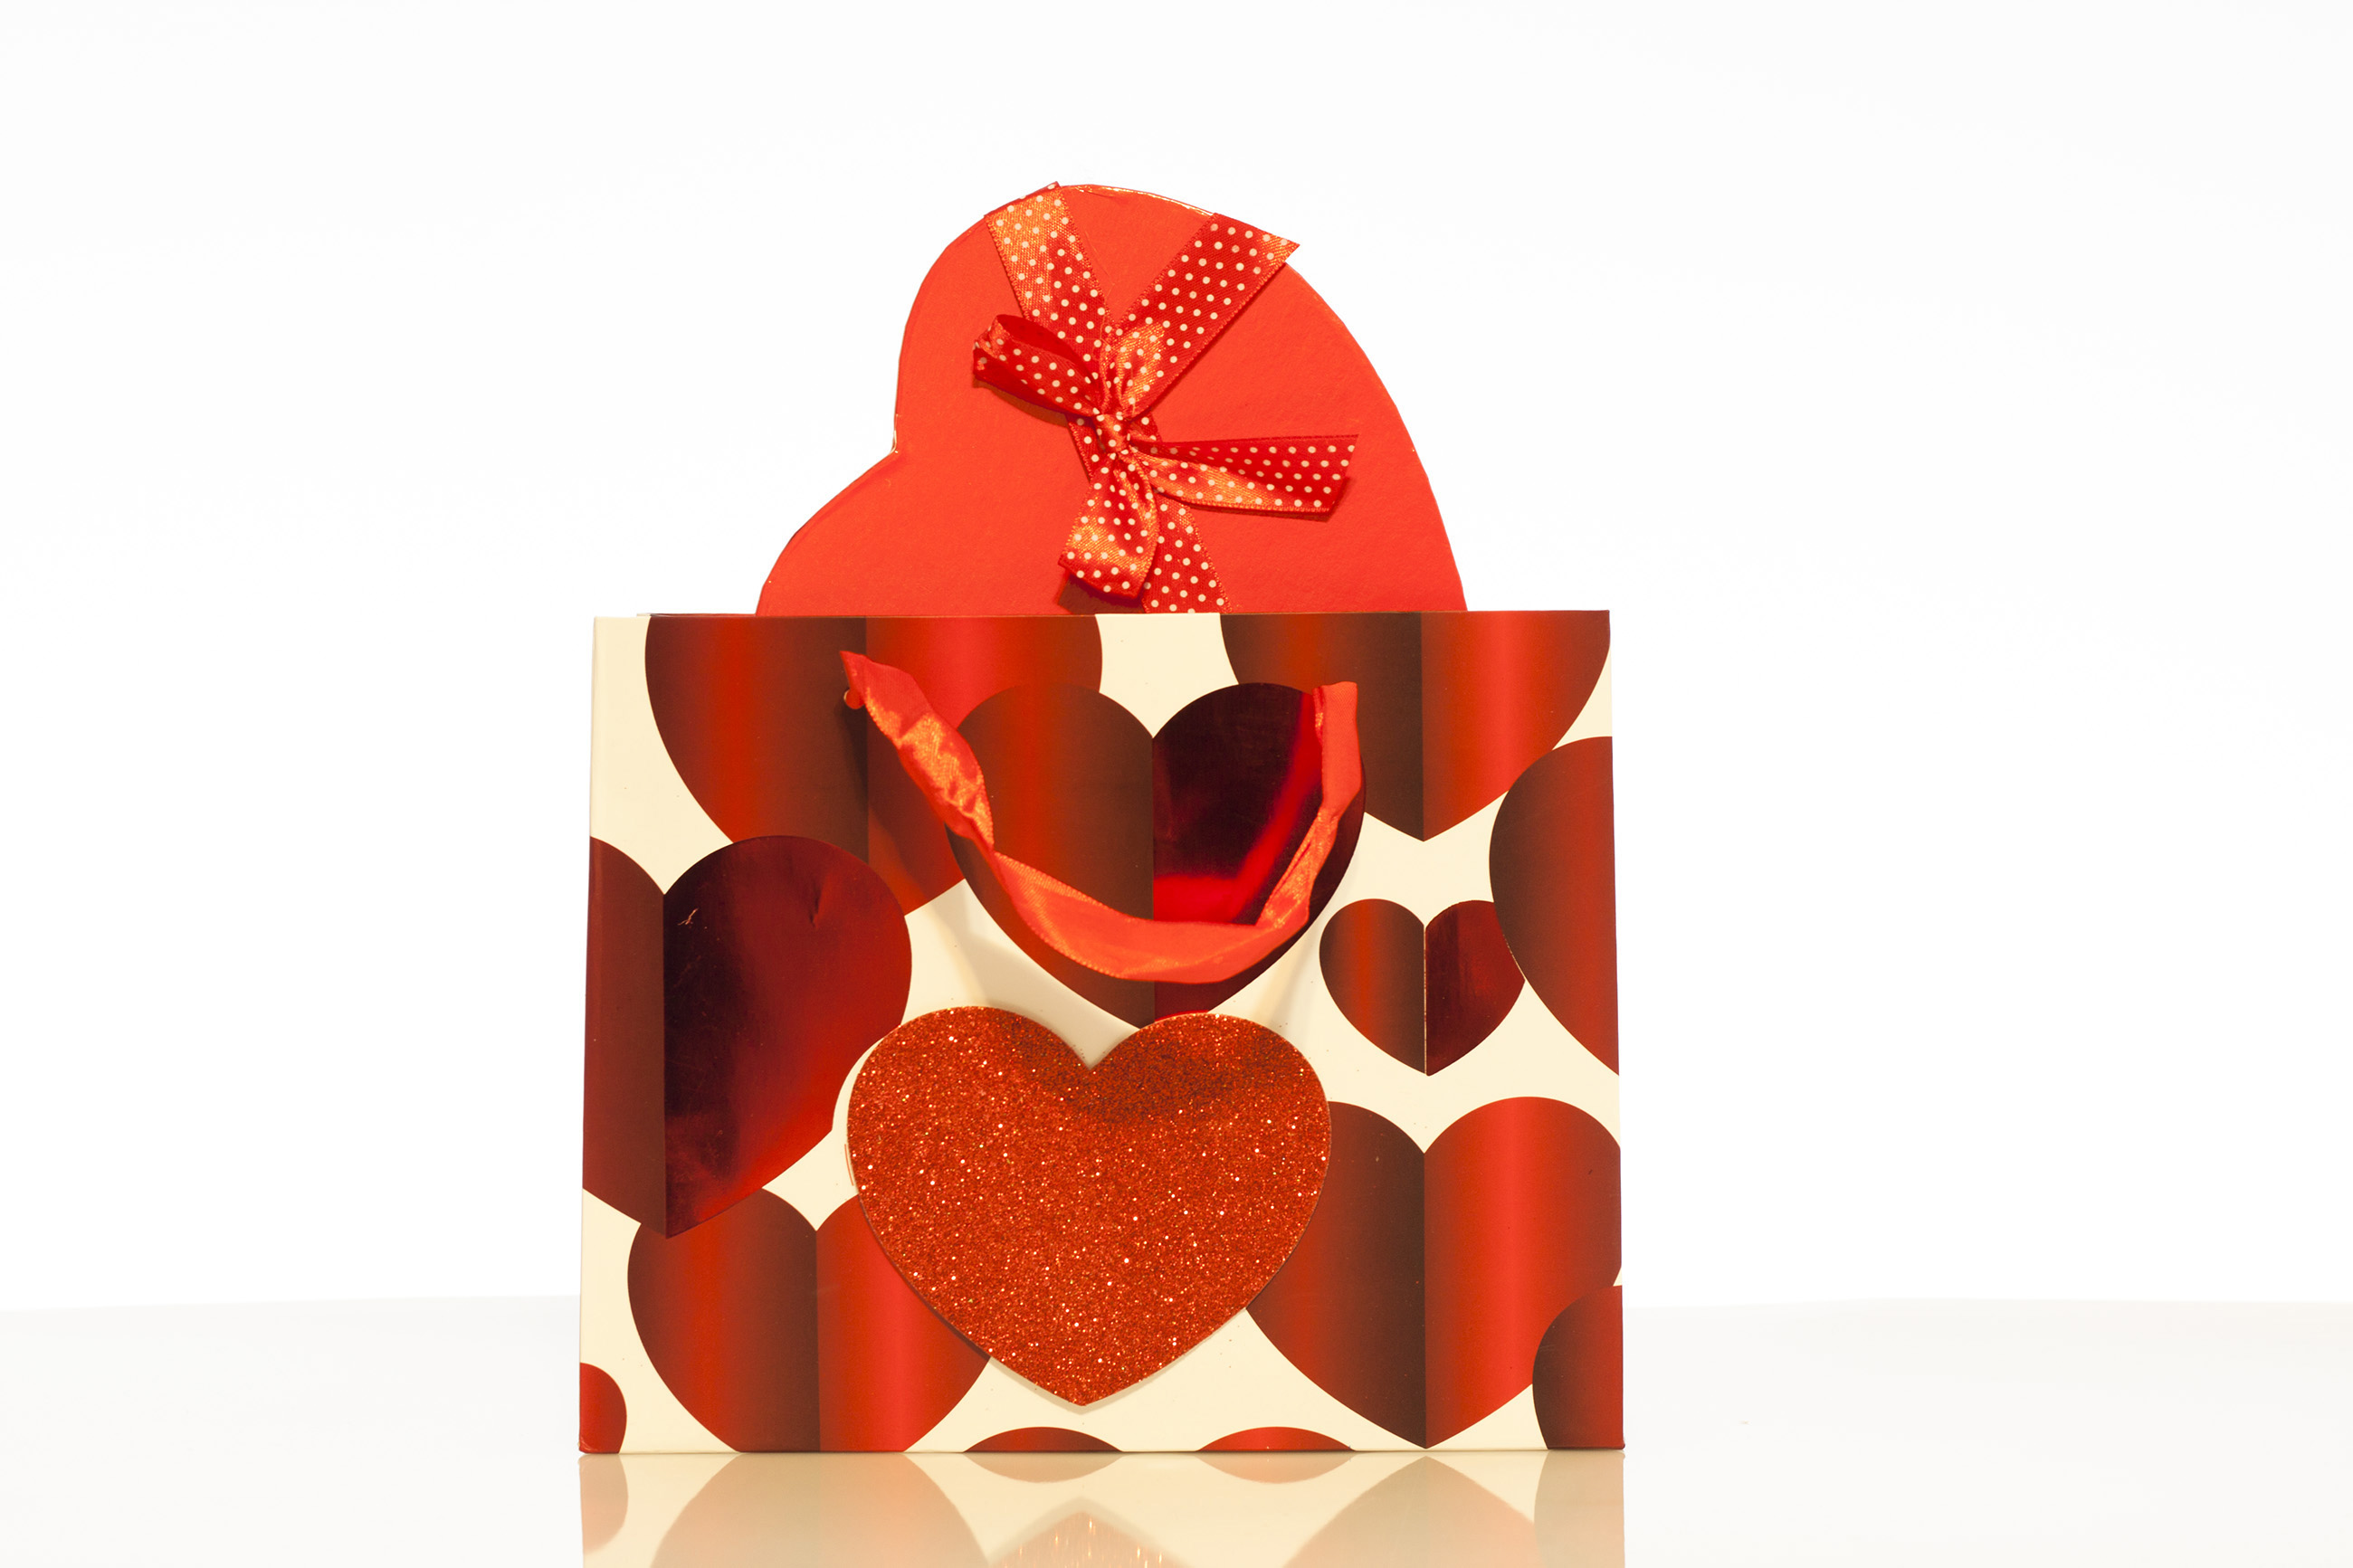 Bag and gift box, Patterned, Present, Red, Paper, HQ Photo